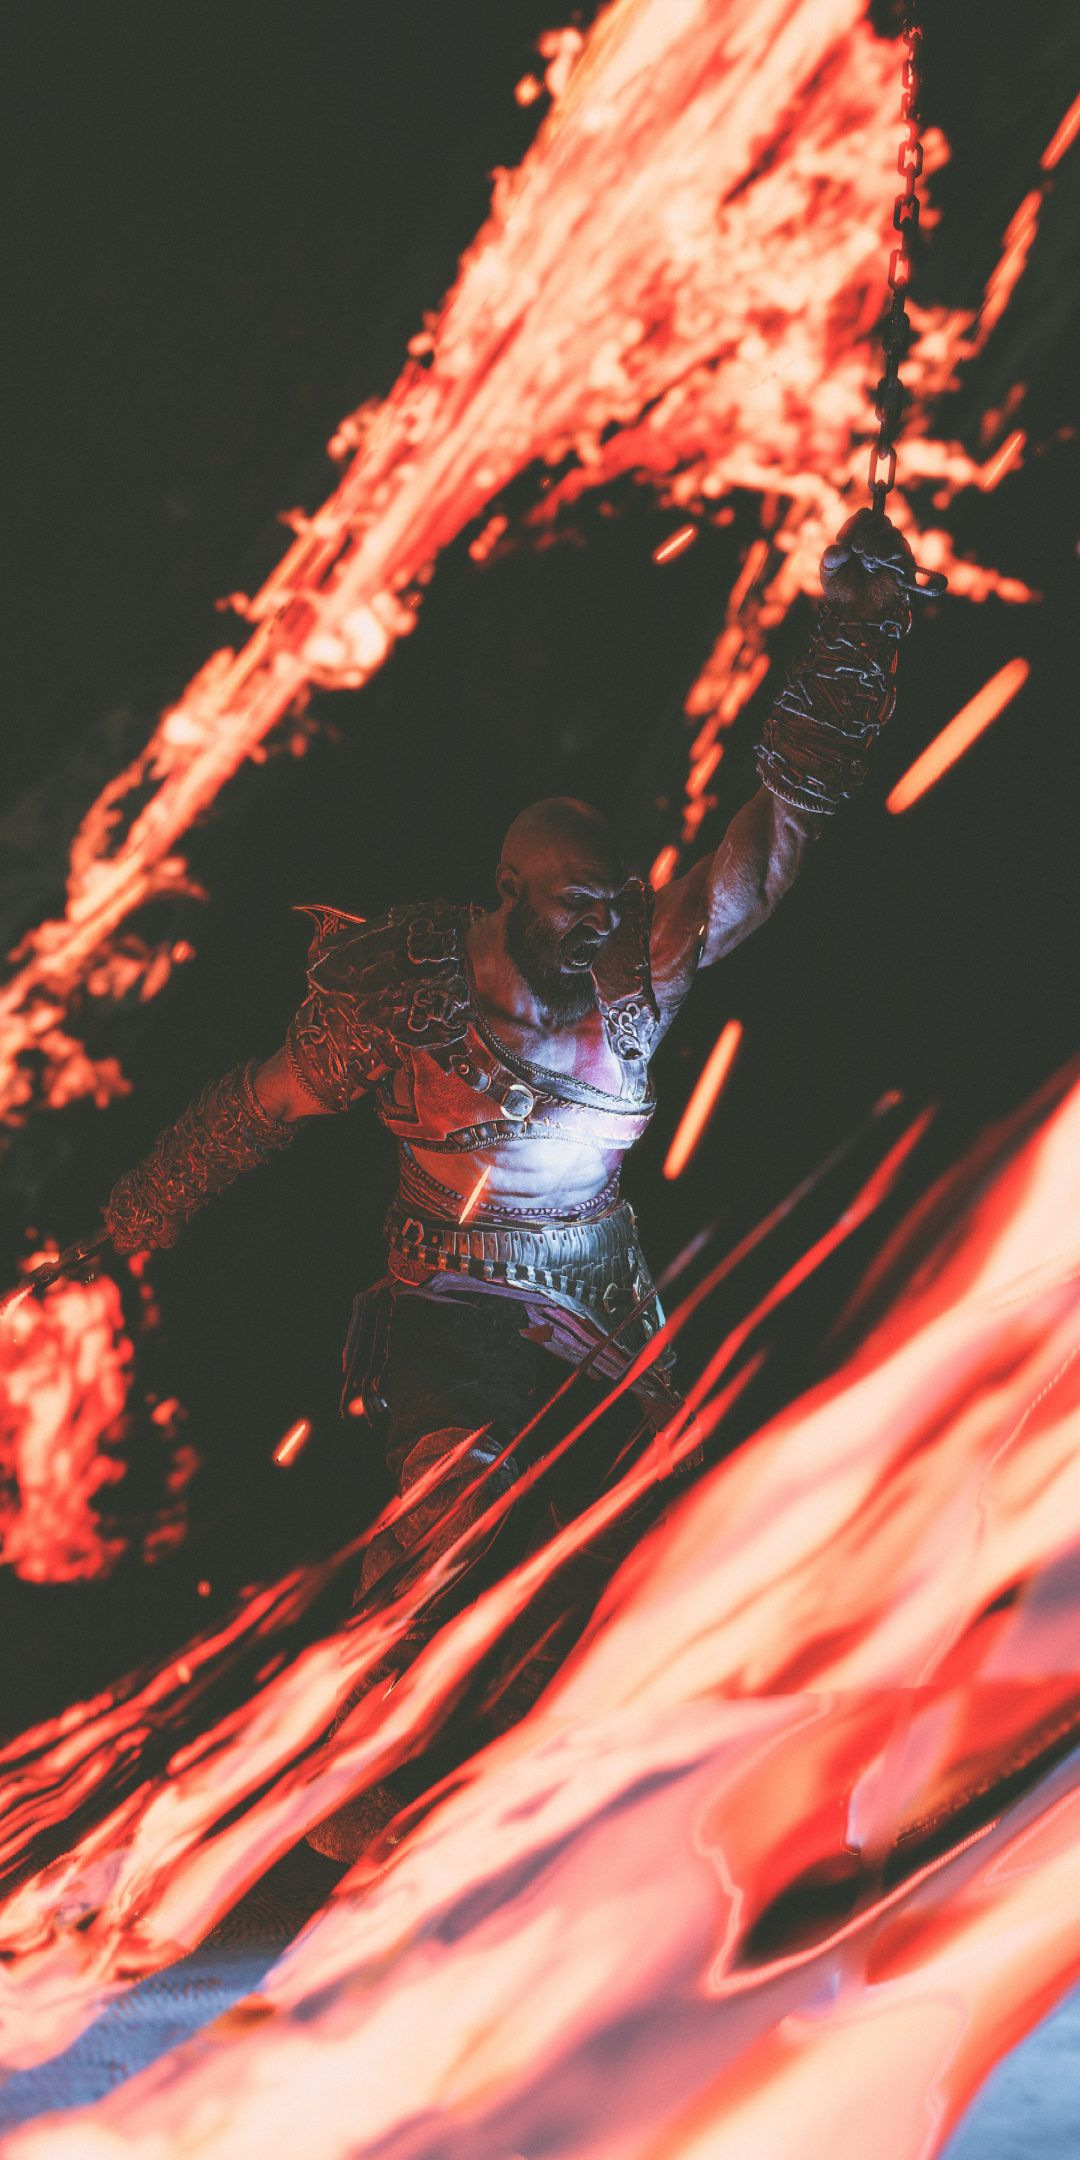 Fire Chains Kratos God Of War 2018 1080x2160 Wallpaper God Of War Kratos God Of War God Of War Series